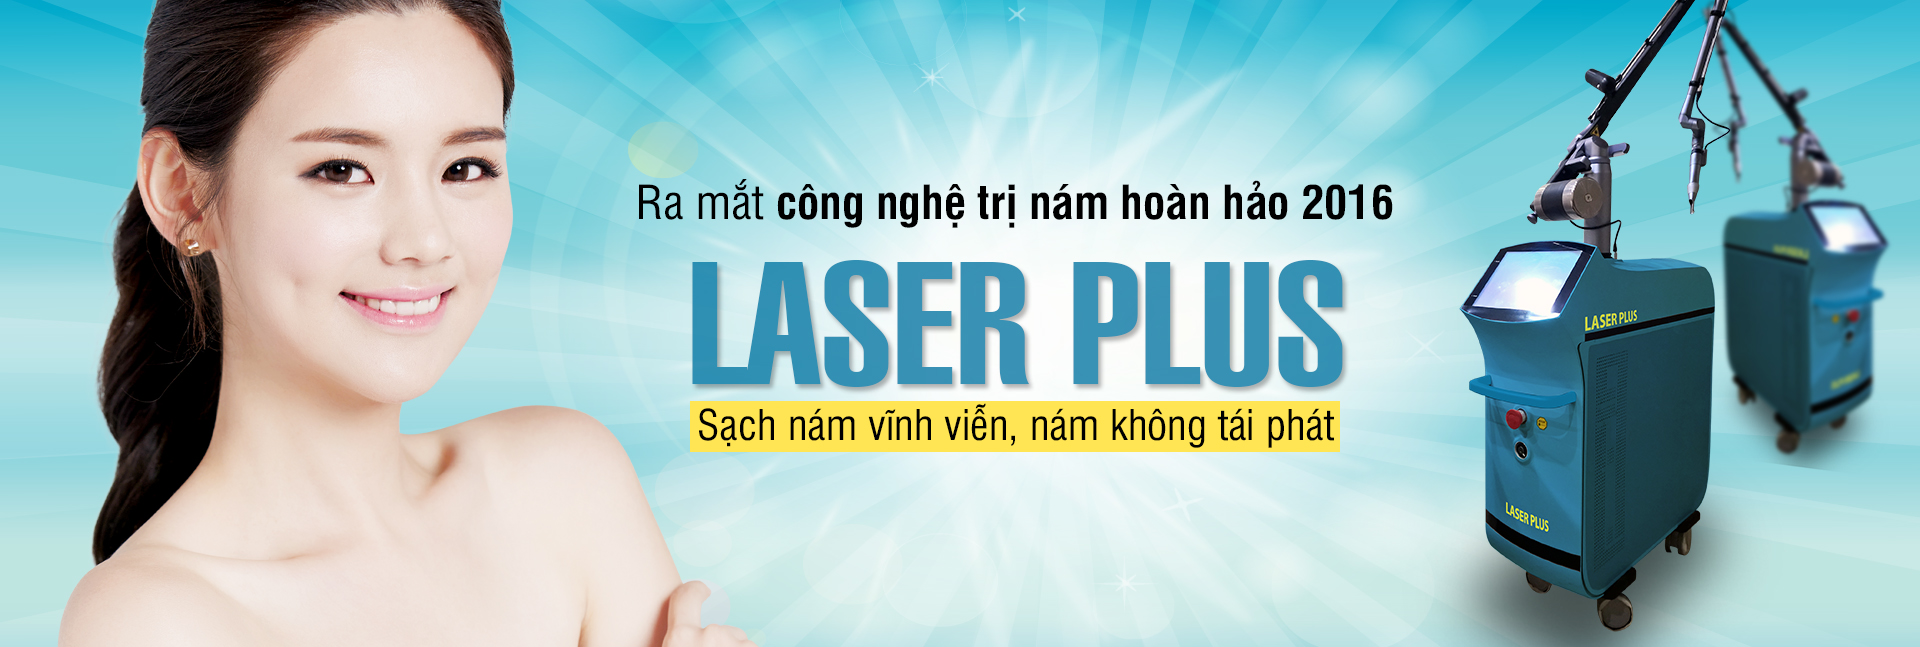 laser-plus-tri-nam-tan-goc